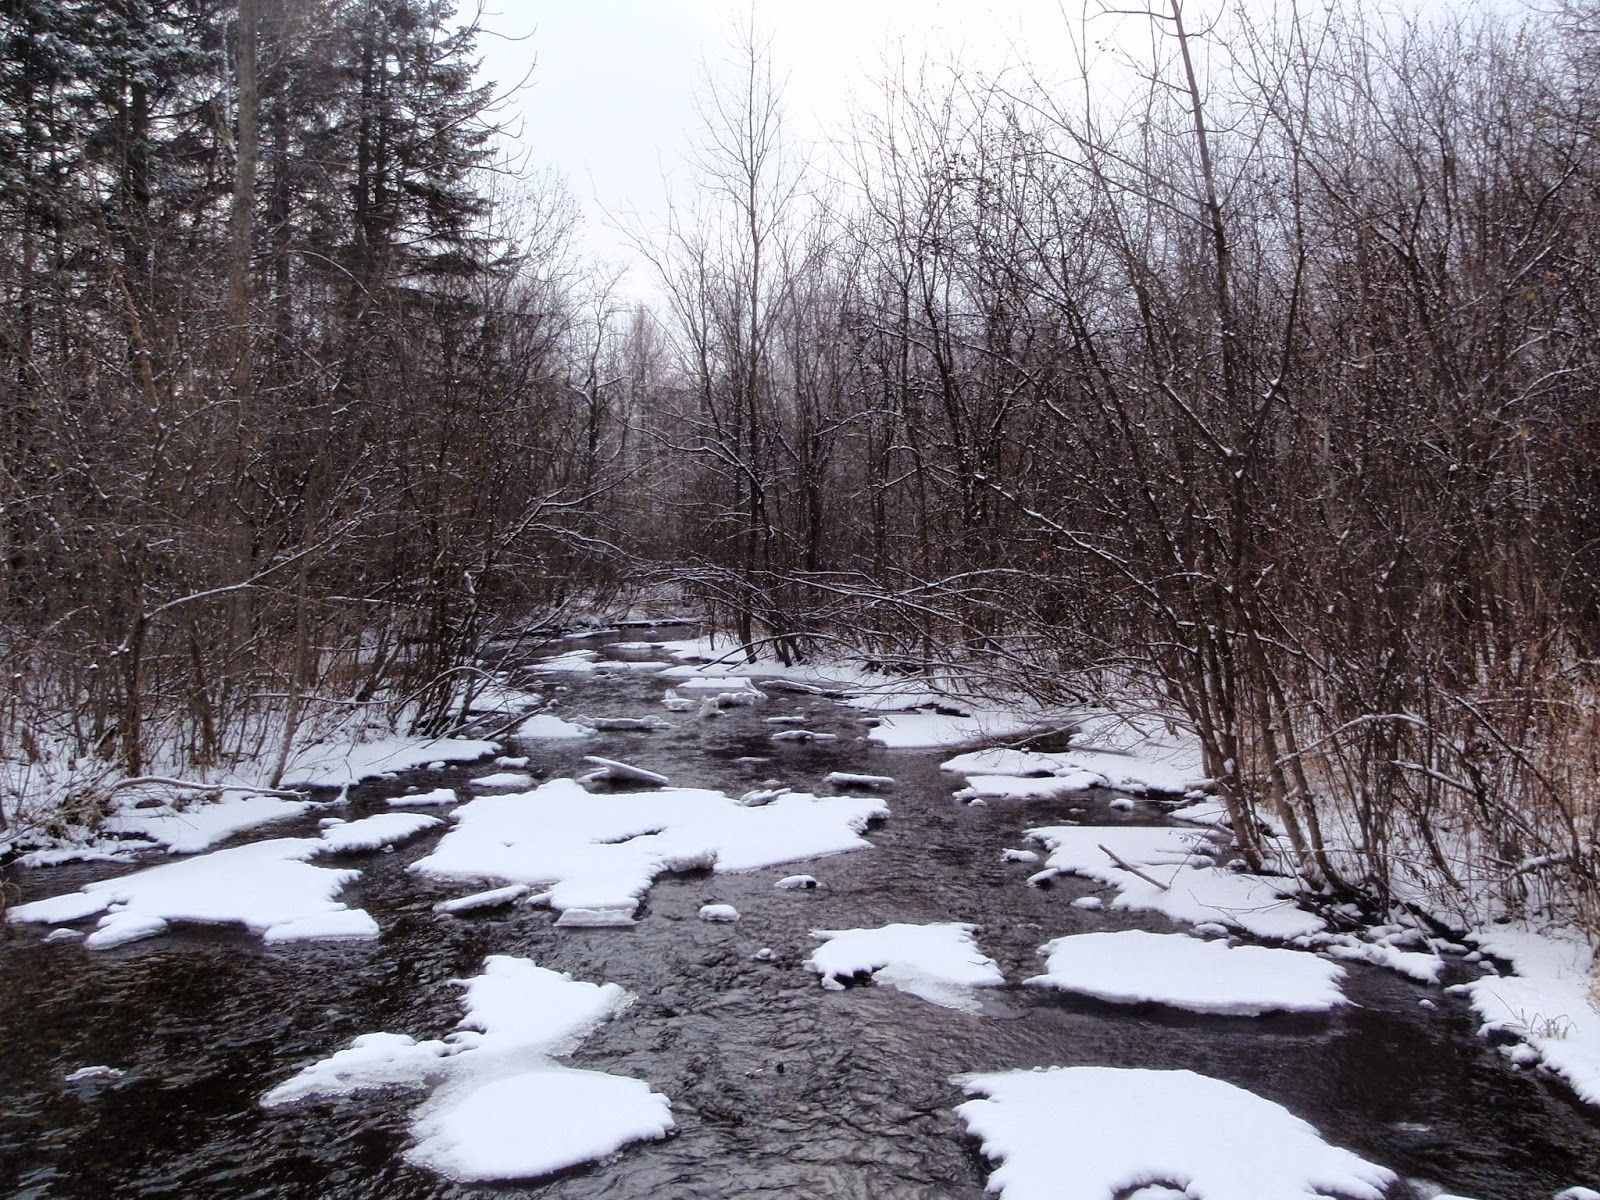 Ice Age Trail - Northern Kettle Moraine State Forest